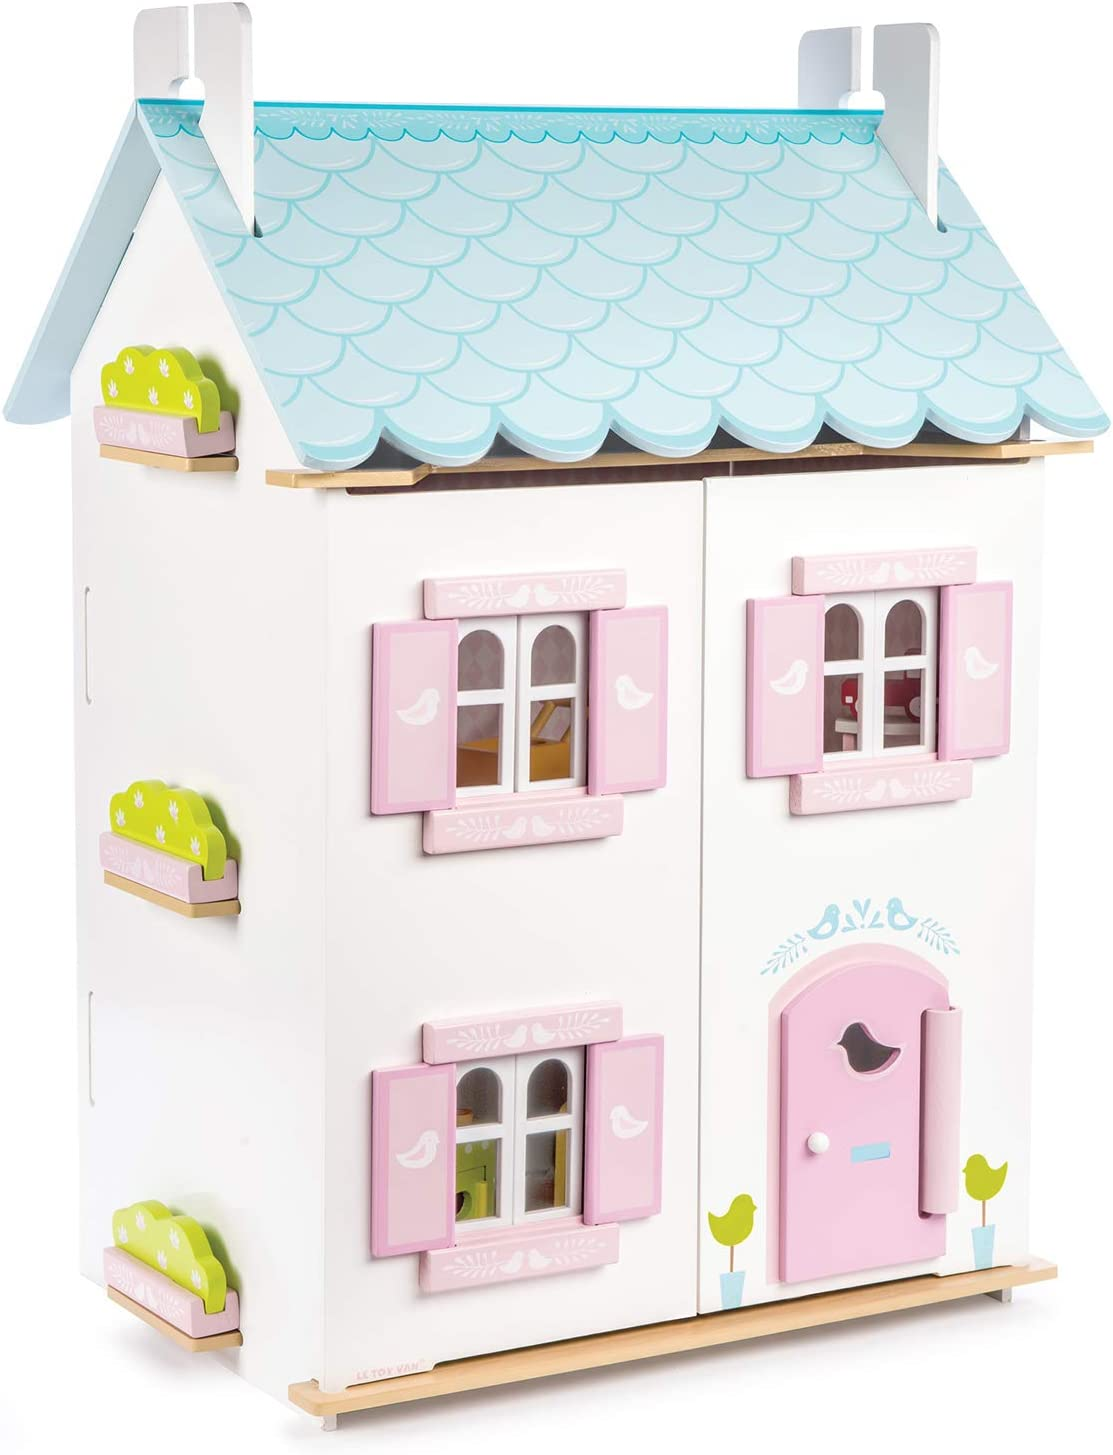 Le Toy Van - Gorgeous Wooden Bluebird Dolls House & Furniture Large Wooden Doll House | Girls 3 Storey Wooden Dolls House Play Set | Suitable for Ages 3+